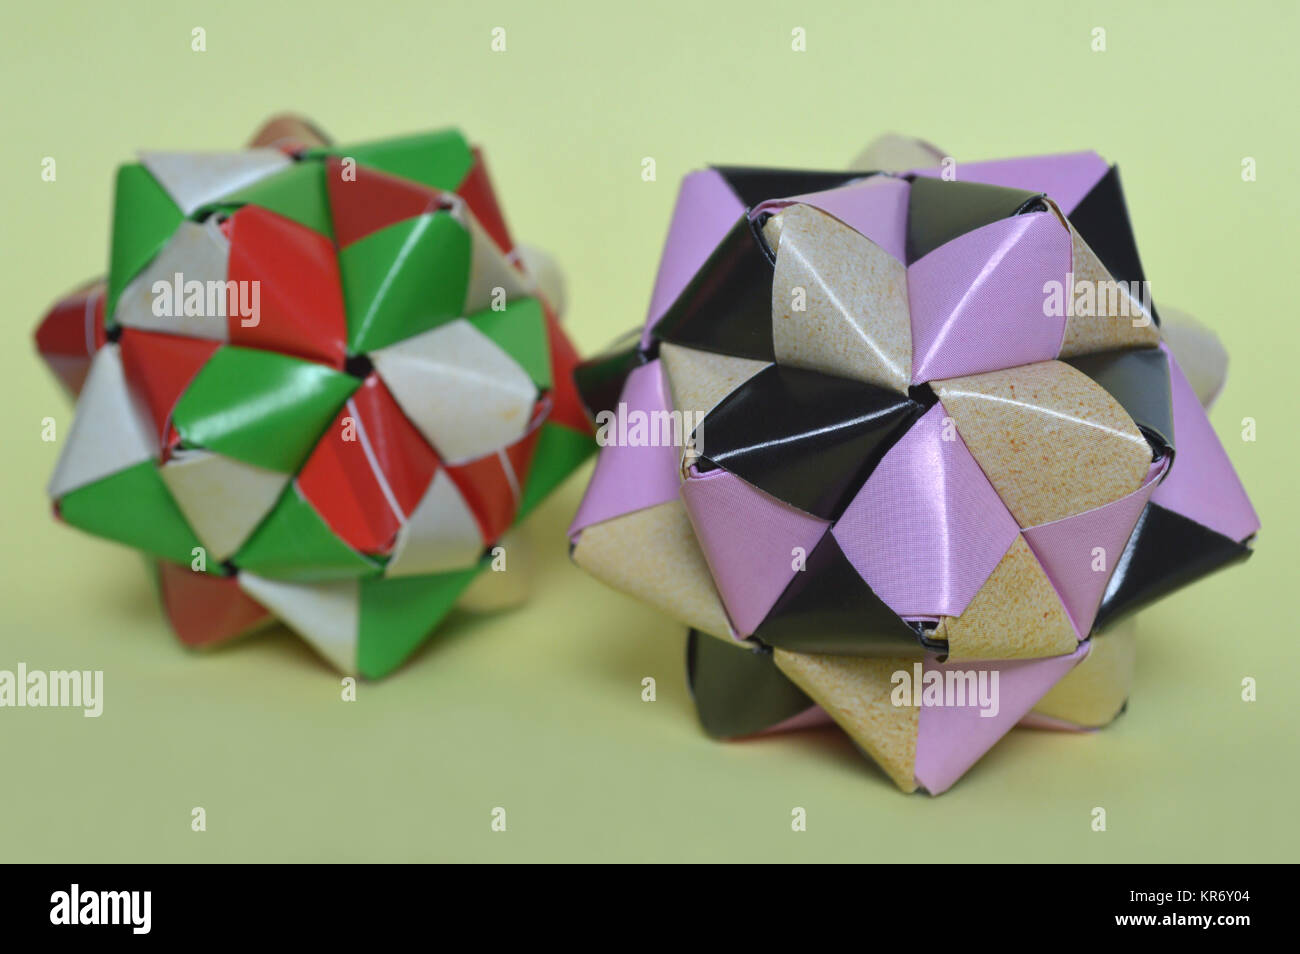 30 Absolutely Beautiful Origami Kusudamas | 954x1300